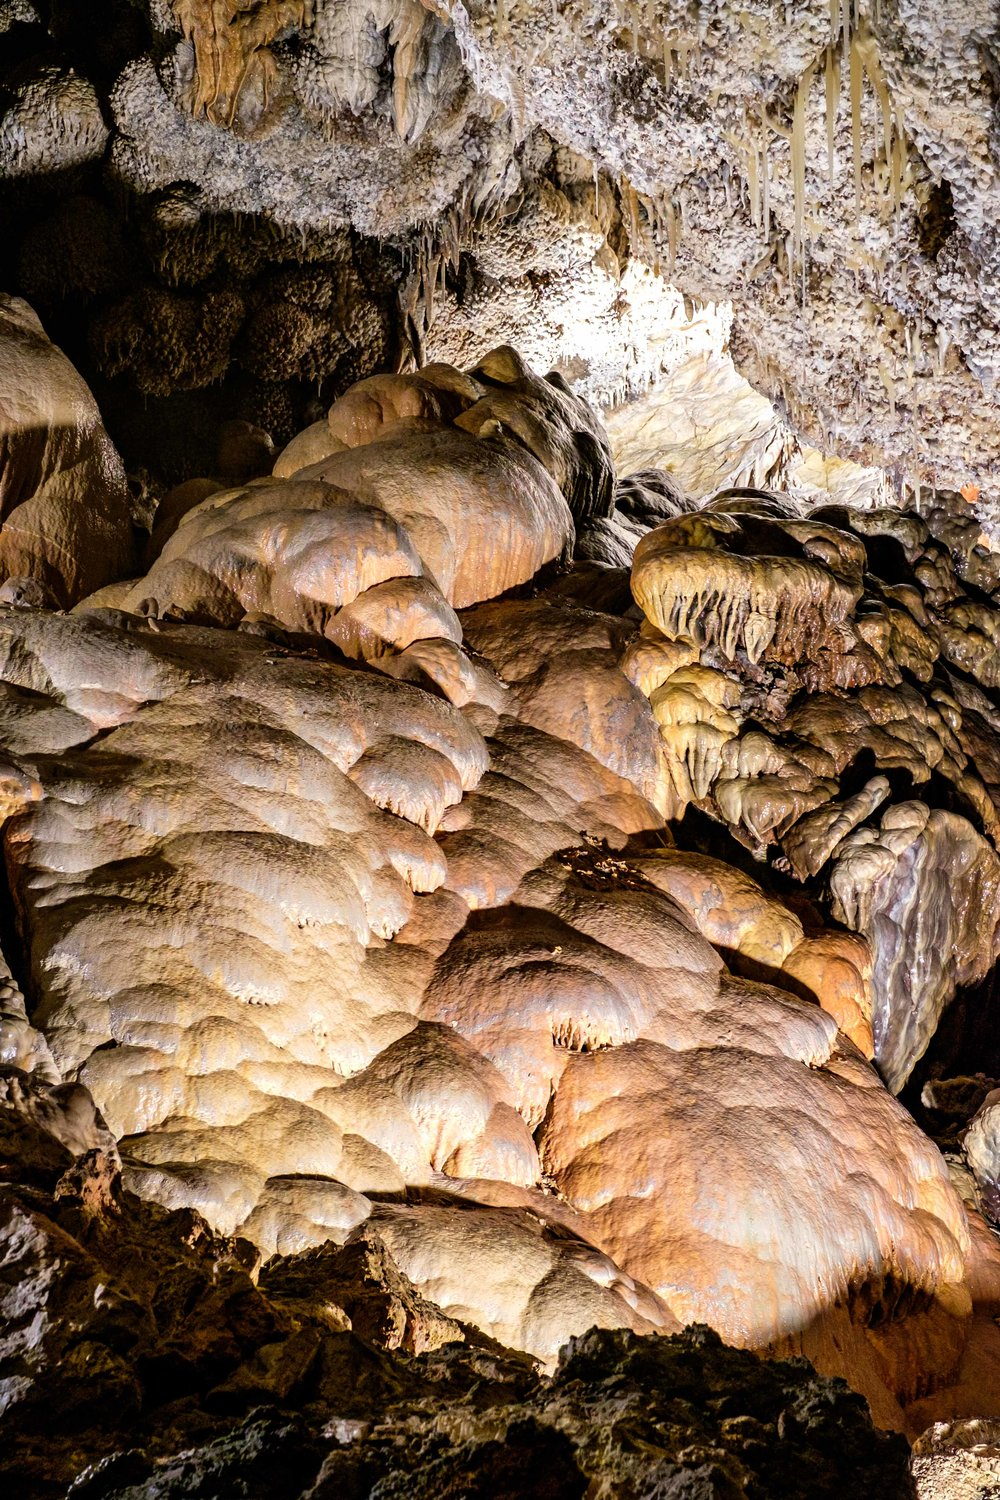 20161018-JI-Jewell Cave while at Wind Cave National Park-_DSF1289.jpg